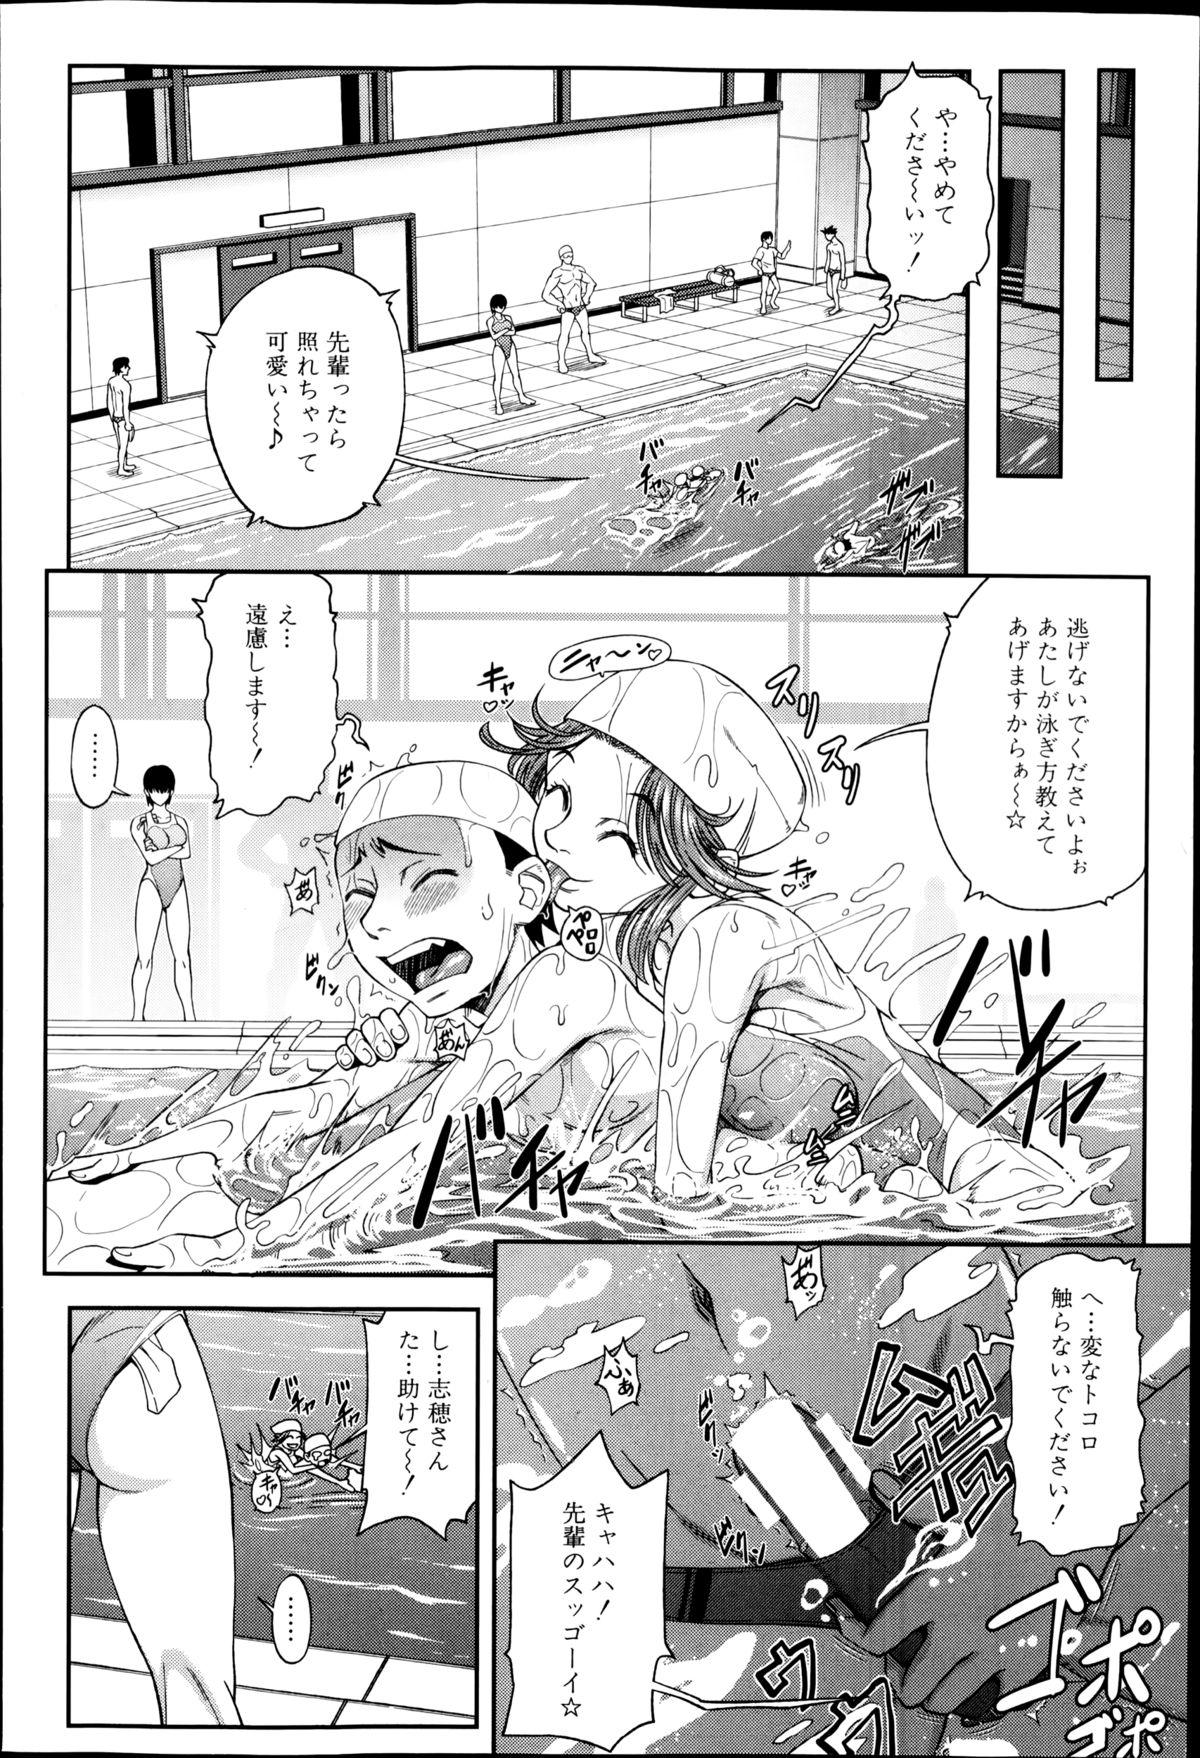 BUSTER COMIC 2014-09 69